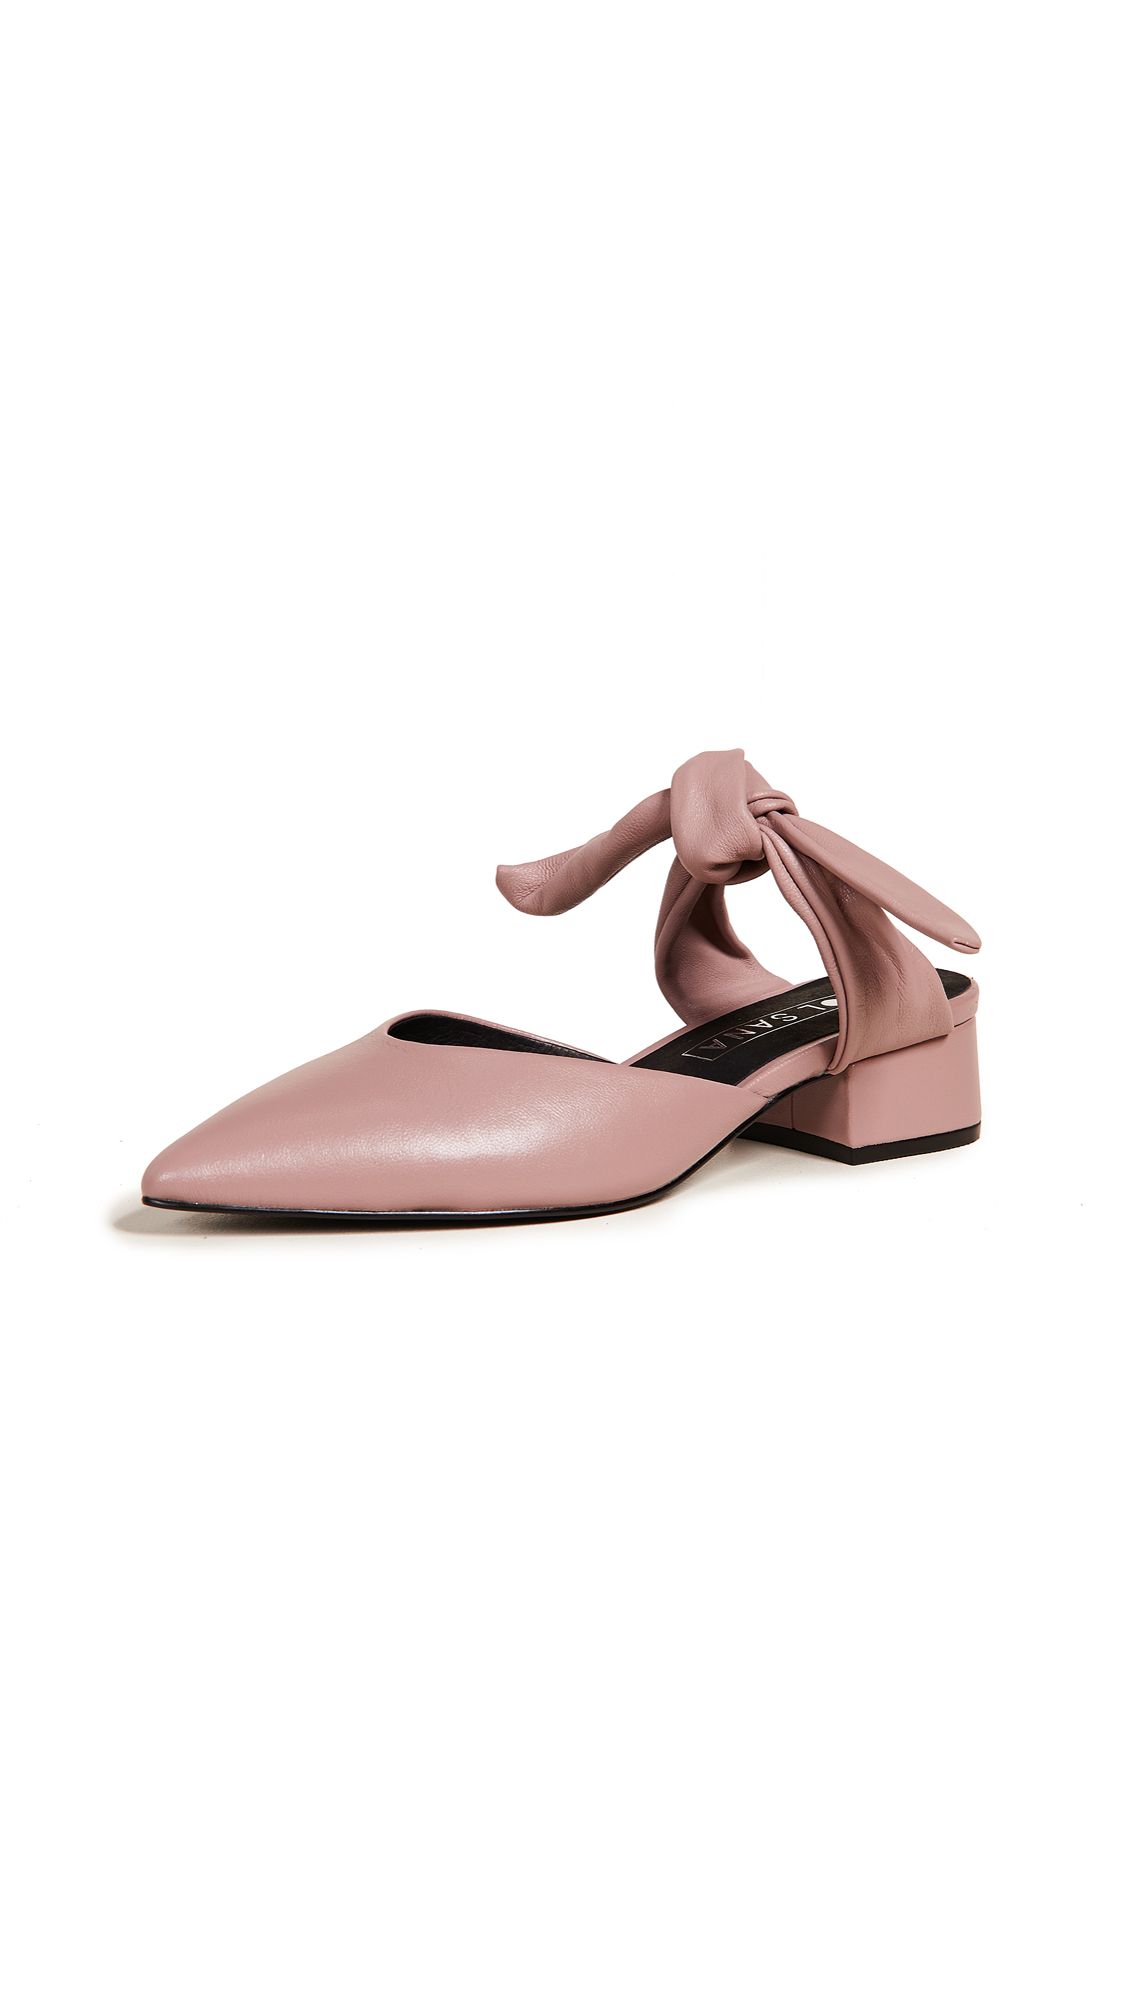 Sol Sana Arkley Kitten Heel Sandals - Dusty Rose